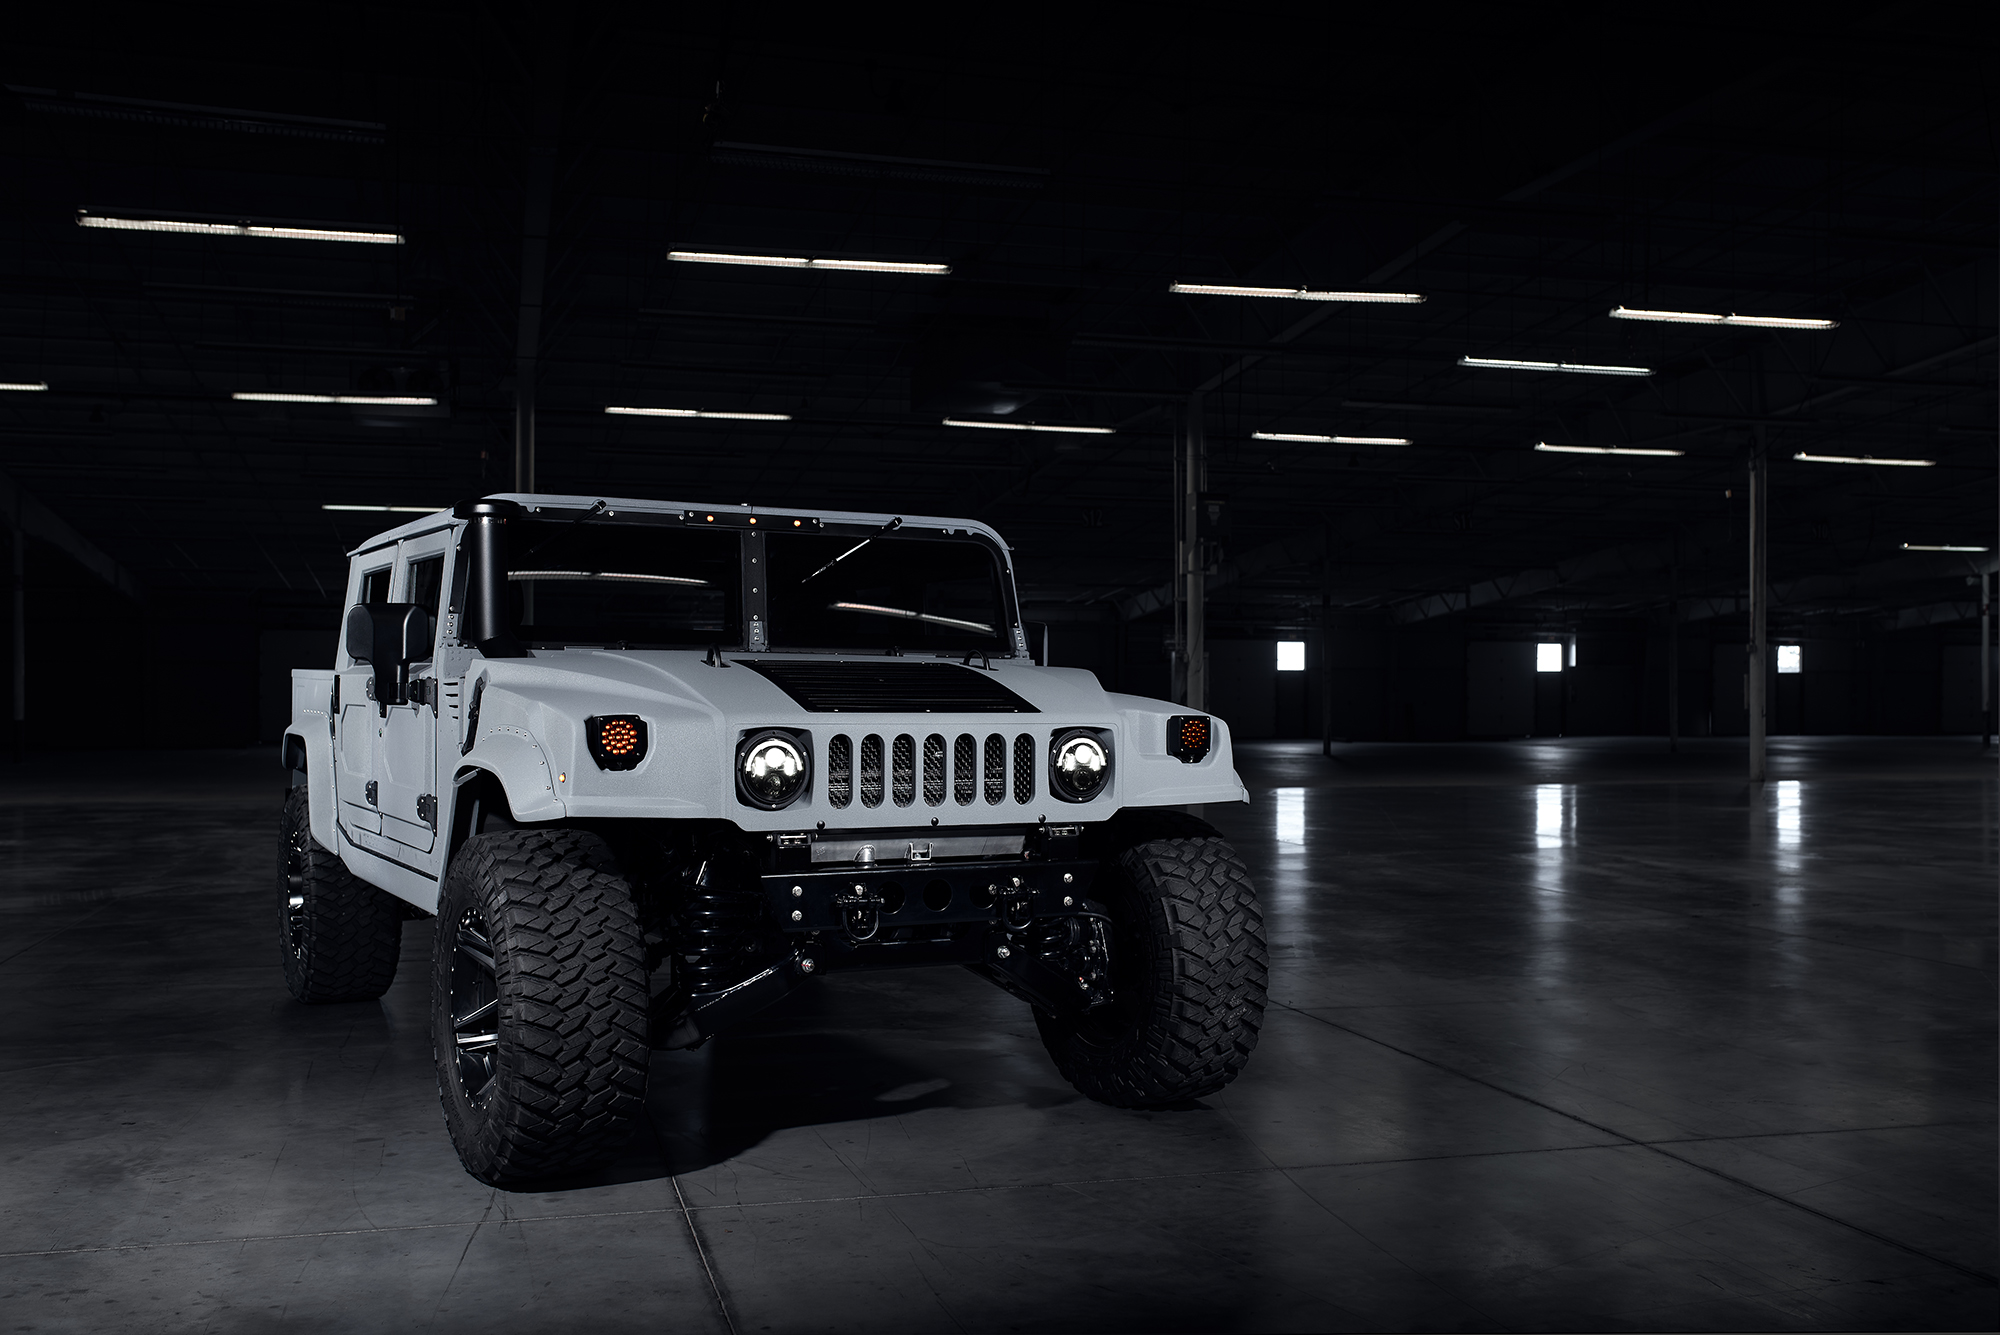 2019 Hummer H1 Price, Concept, Specs >> Mil Spec Has Built Hummer Launch Edition 003 And This One S For Sale